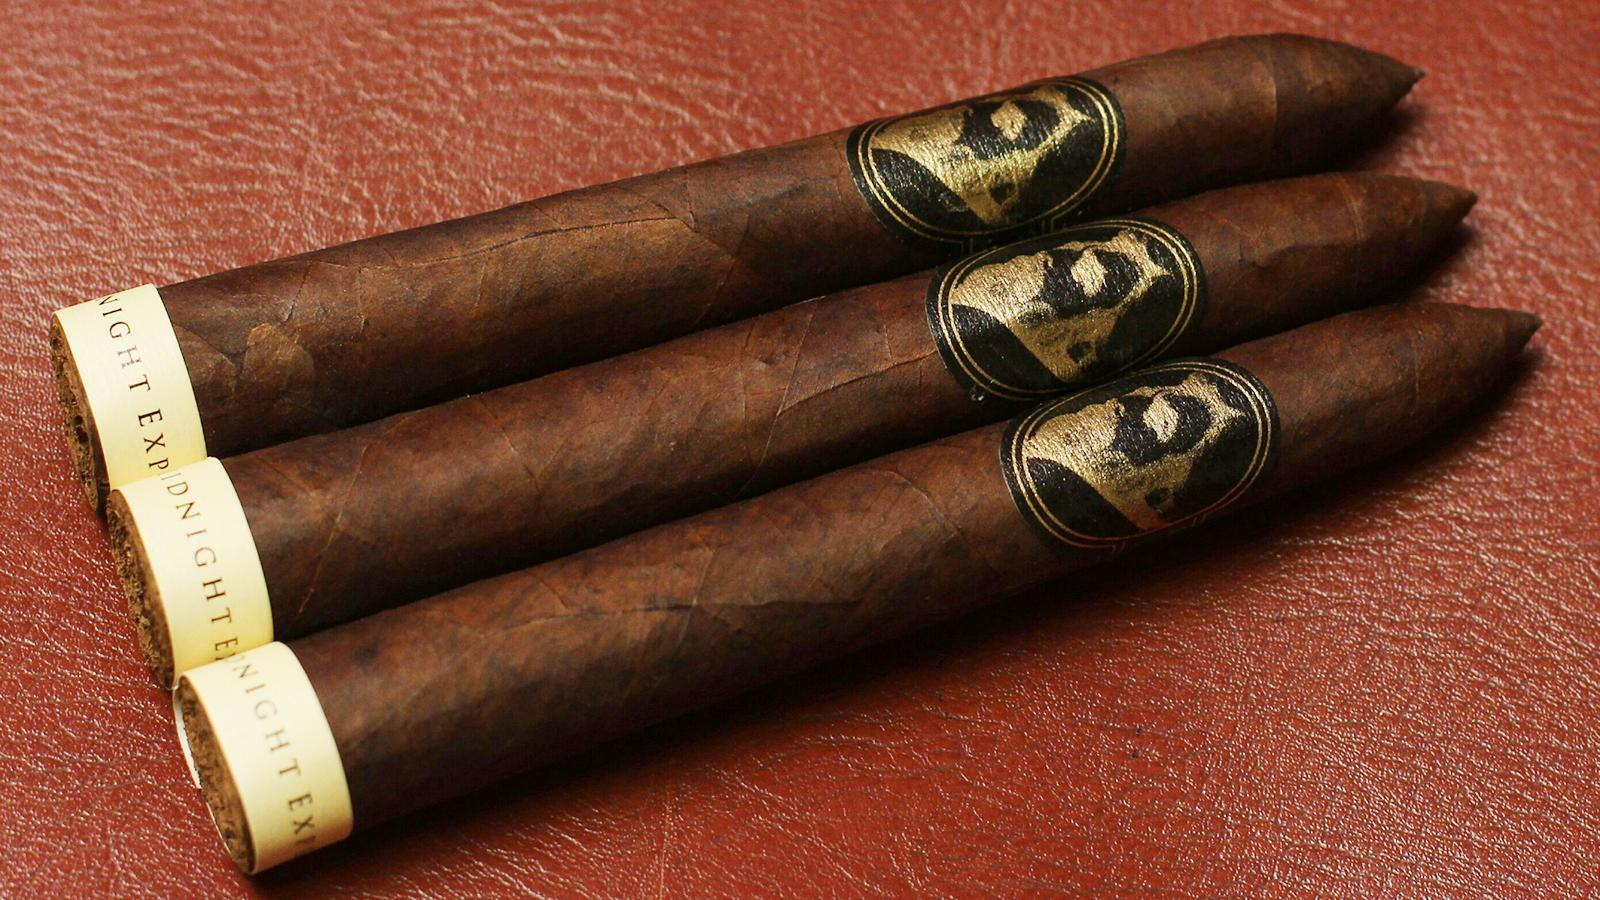 Caldwell Unveils New Cigars for IPCPR, Teams Up with Perez-Carrillo